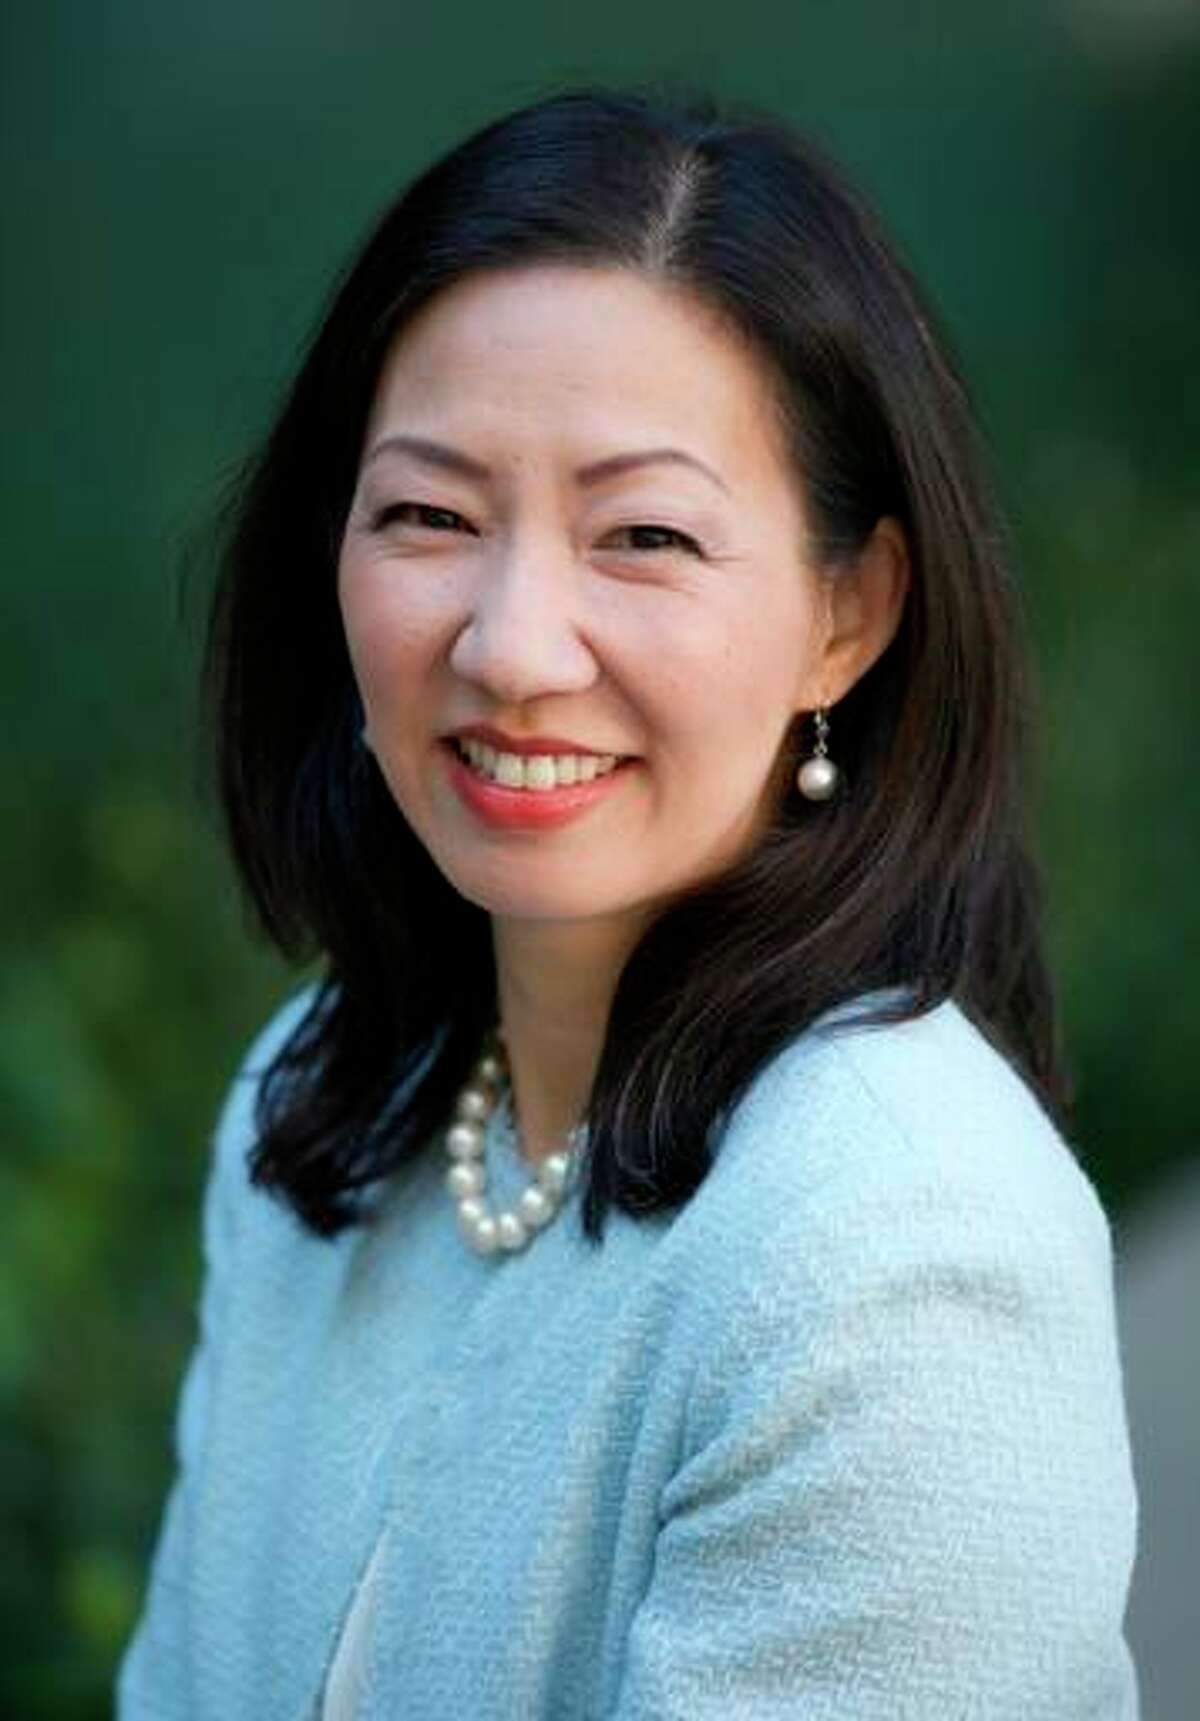 Catherine Kuo, a mother of two and a Dublin Unified School District trustee died after she was struck by a vehicle while volunteering at a food distribution event at a Dublin middle school.